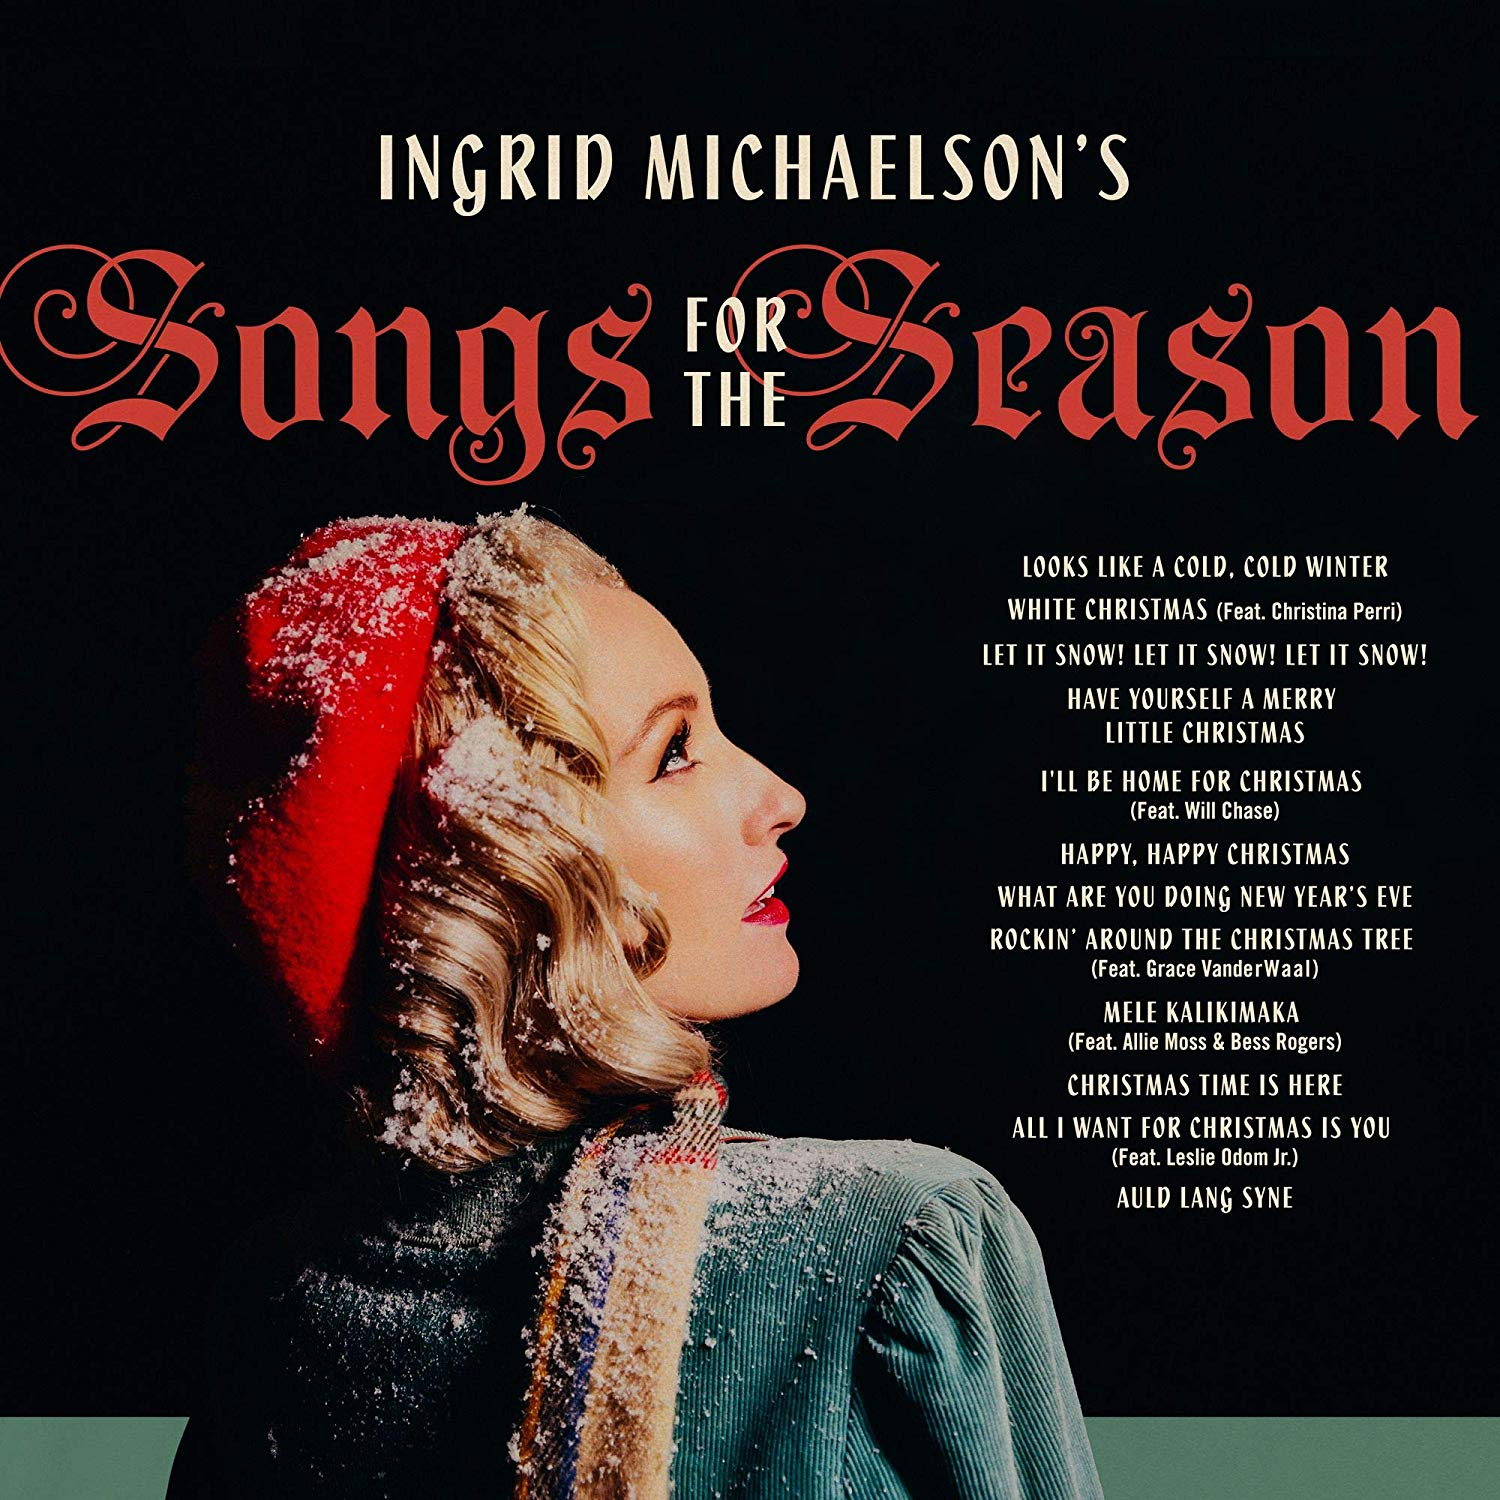 Ingrid Michaelson's Songs for the Season/ingridmichaelson.com